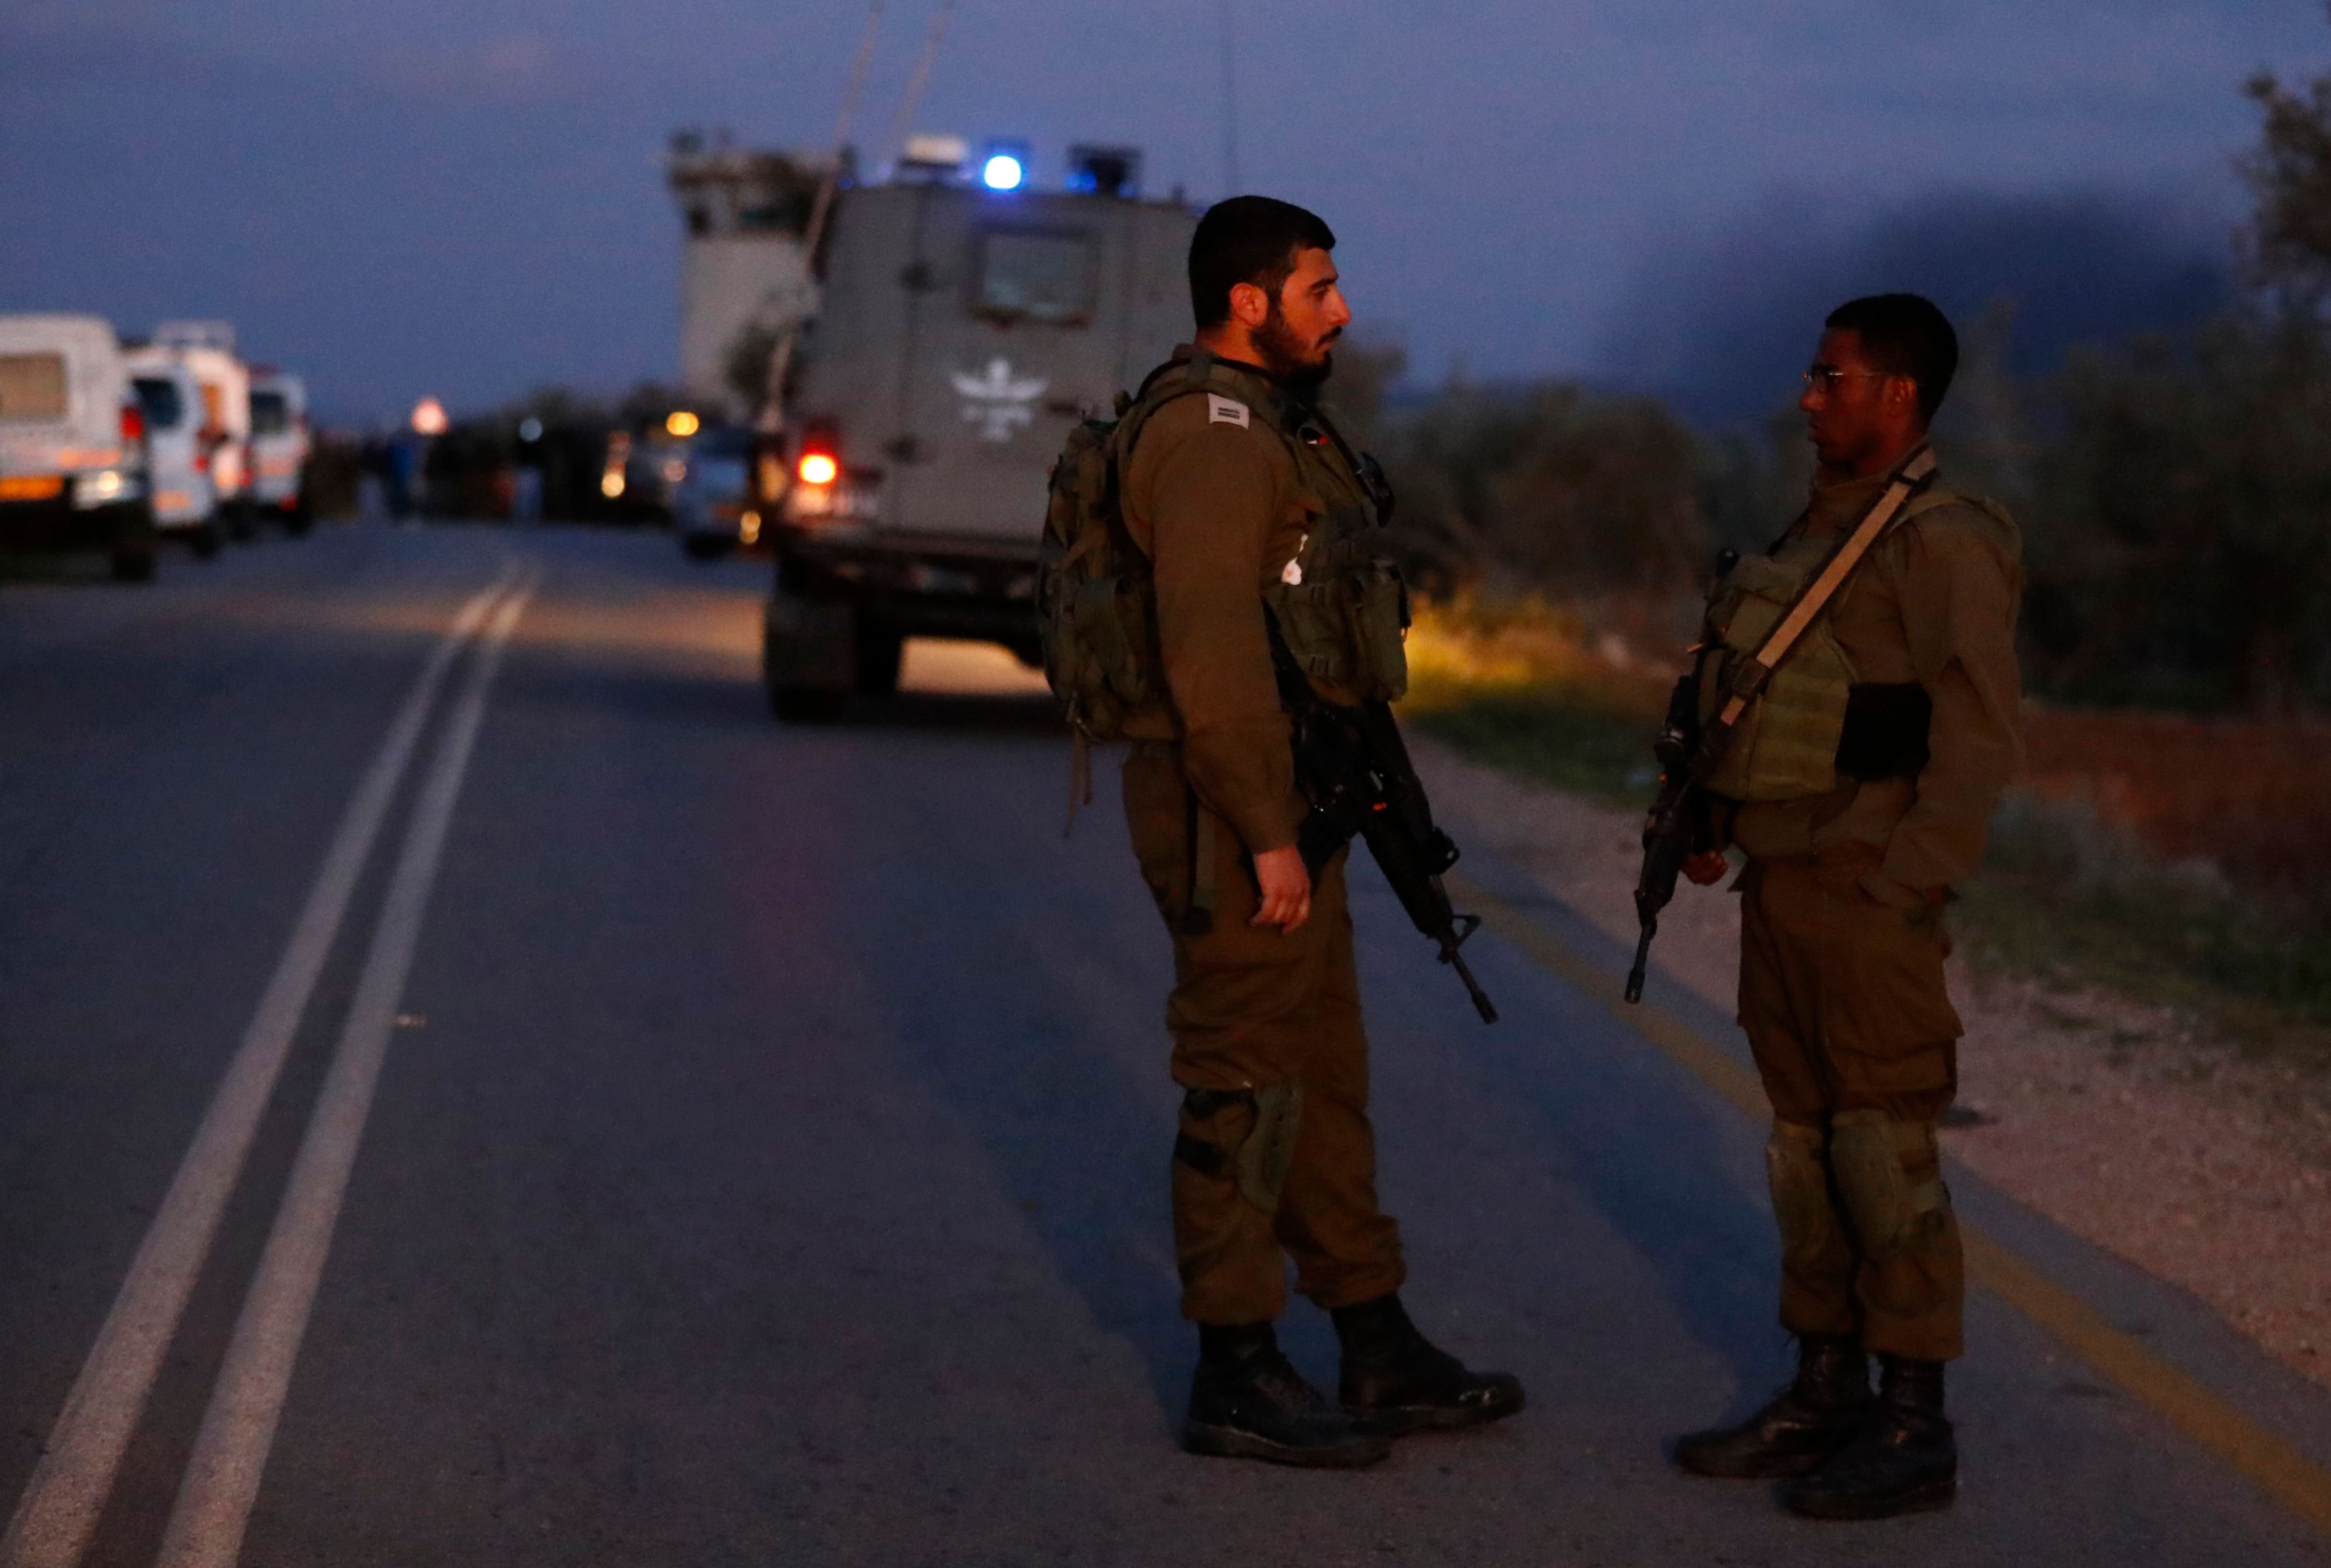 Suspected Palestinian car-ramming kills 2 Israelis in WBank: radio